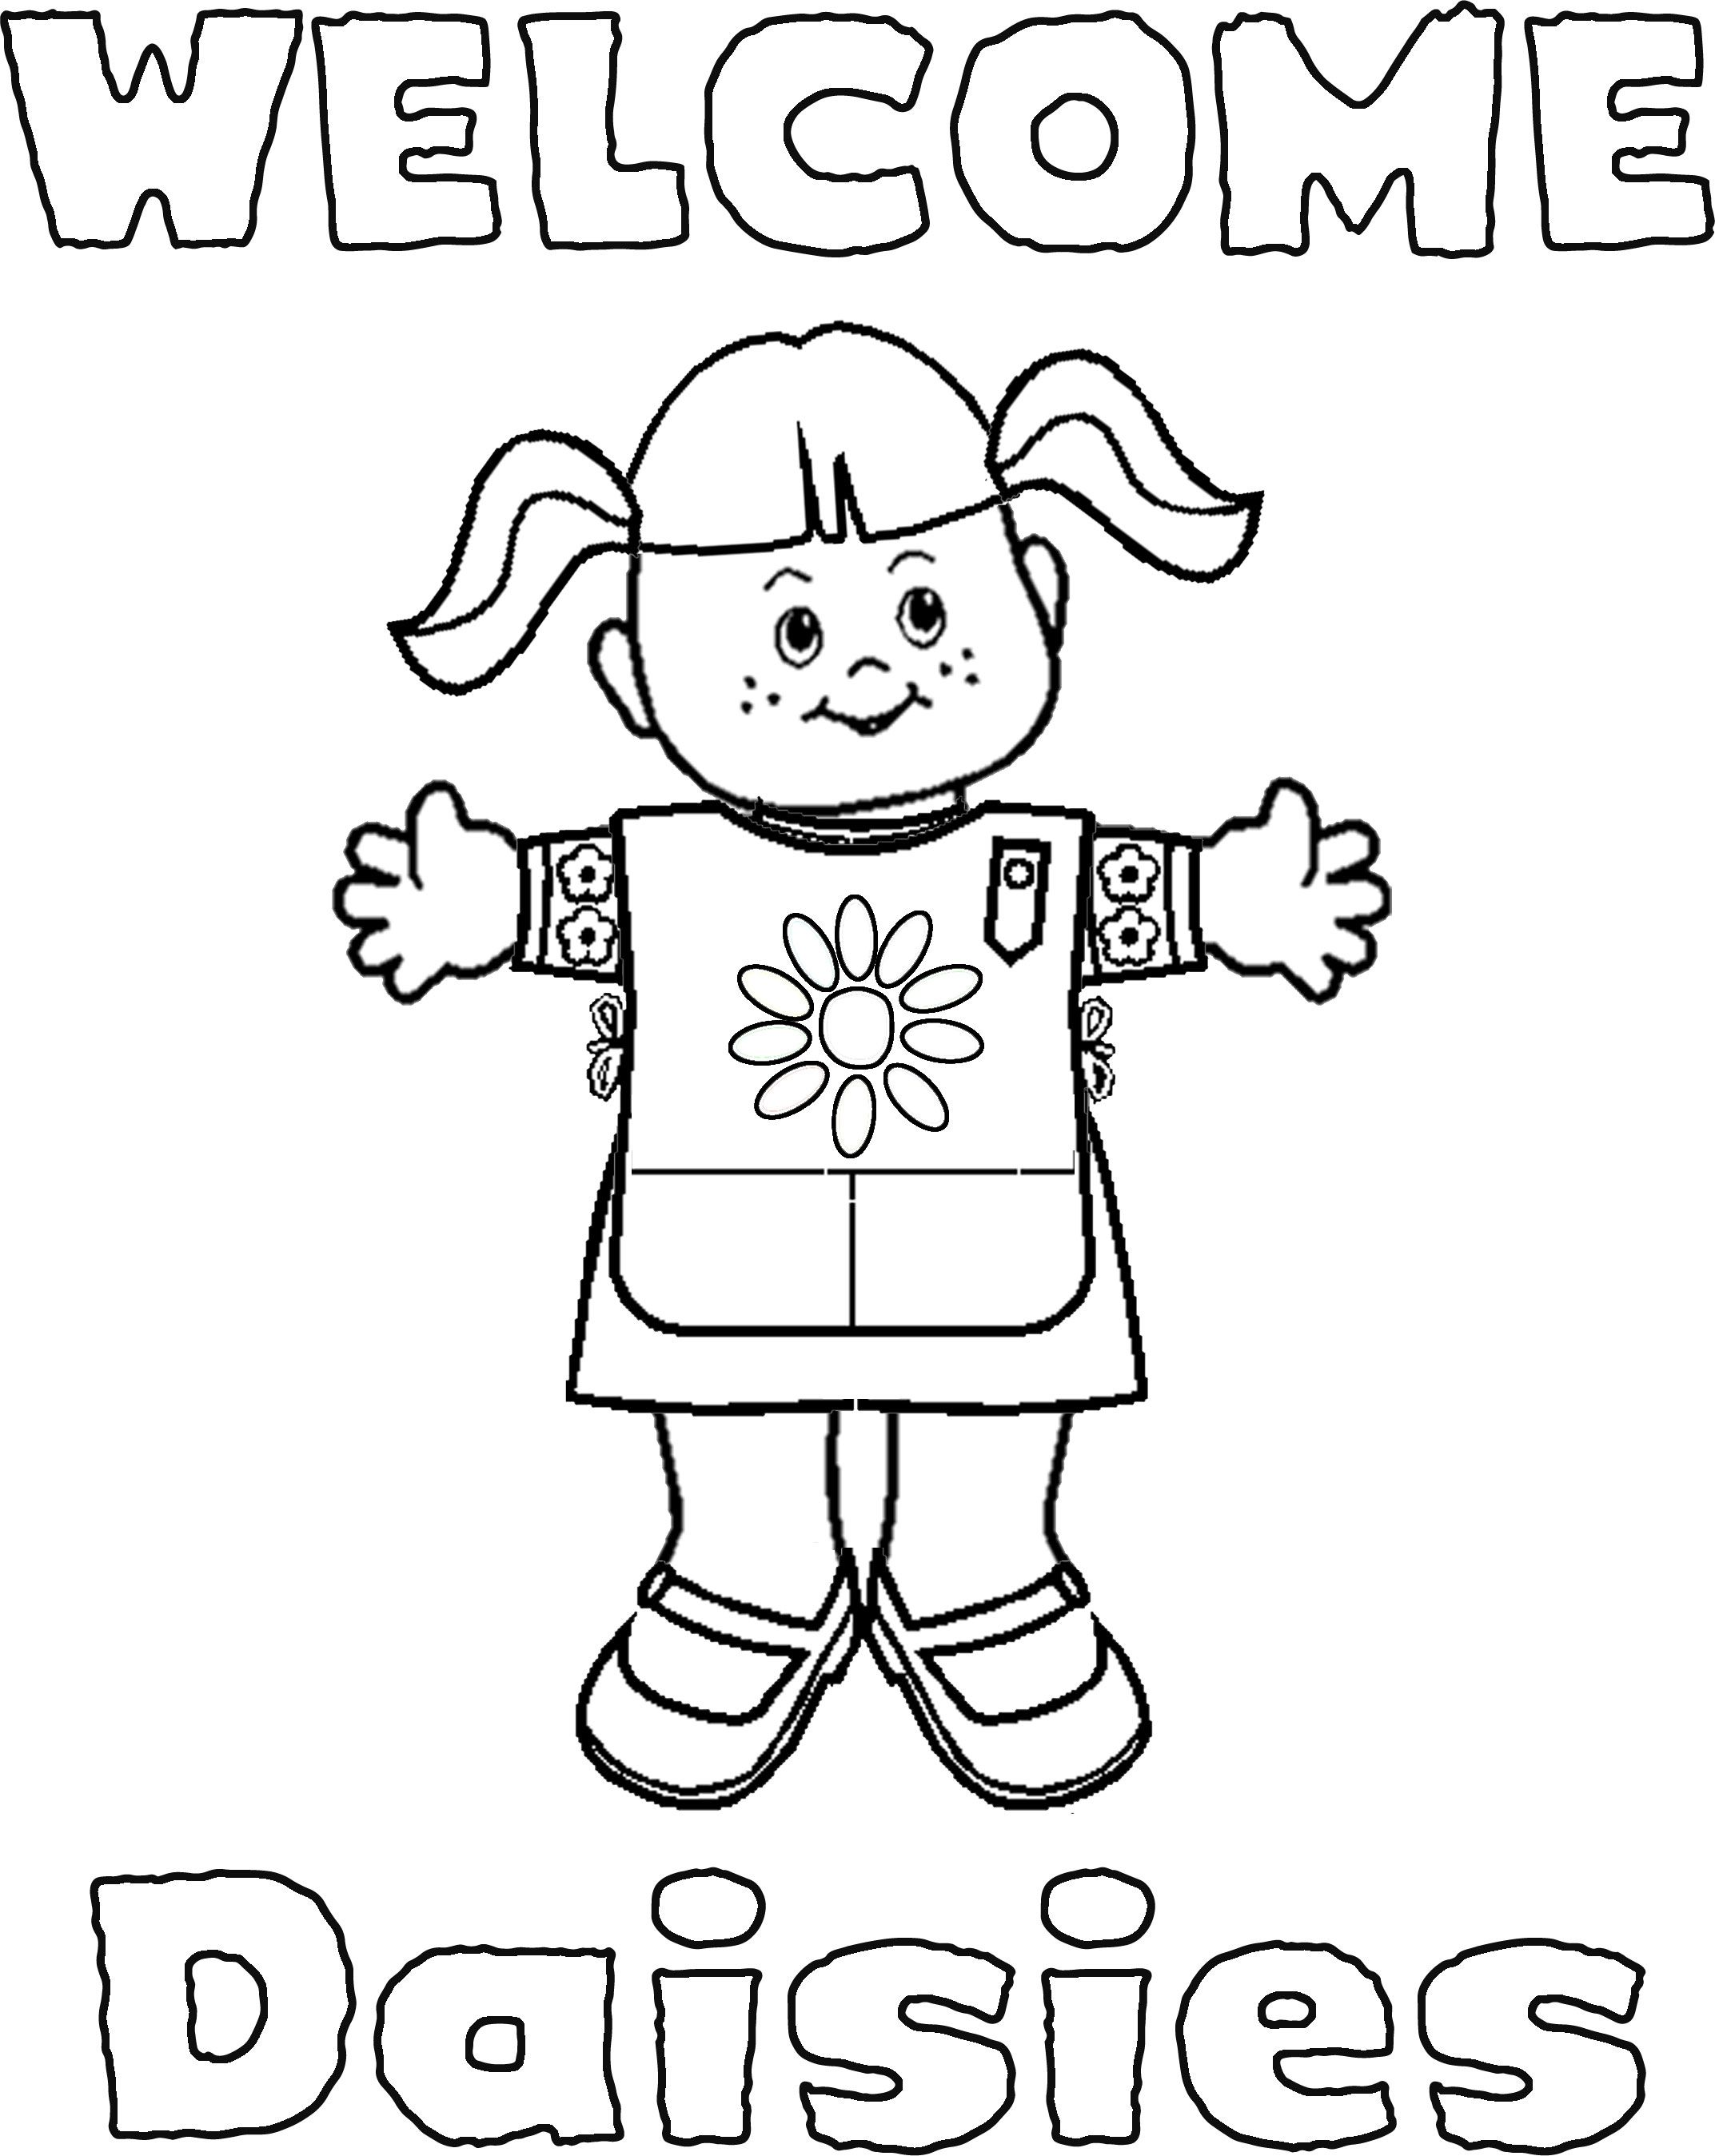 It's just a photo of Epic Daisy Scouts Coloring Pages